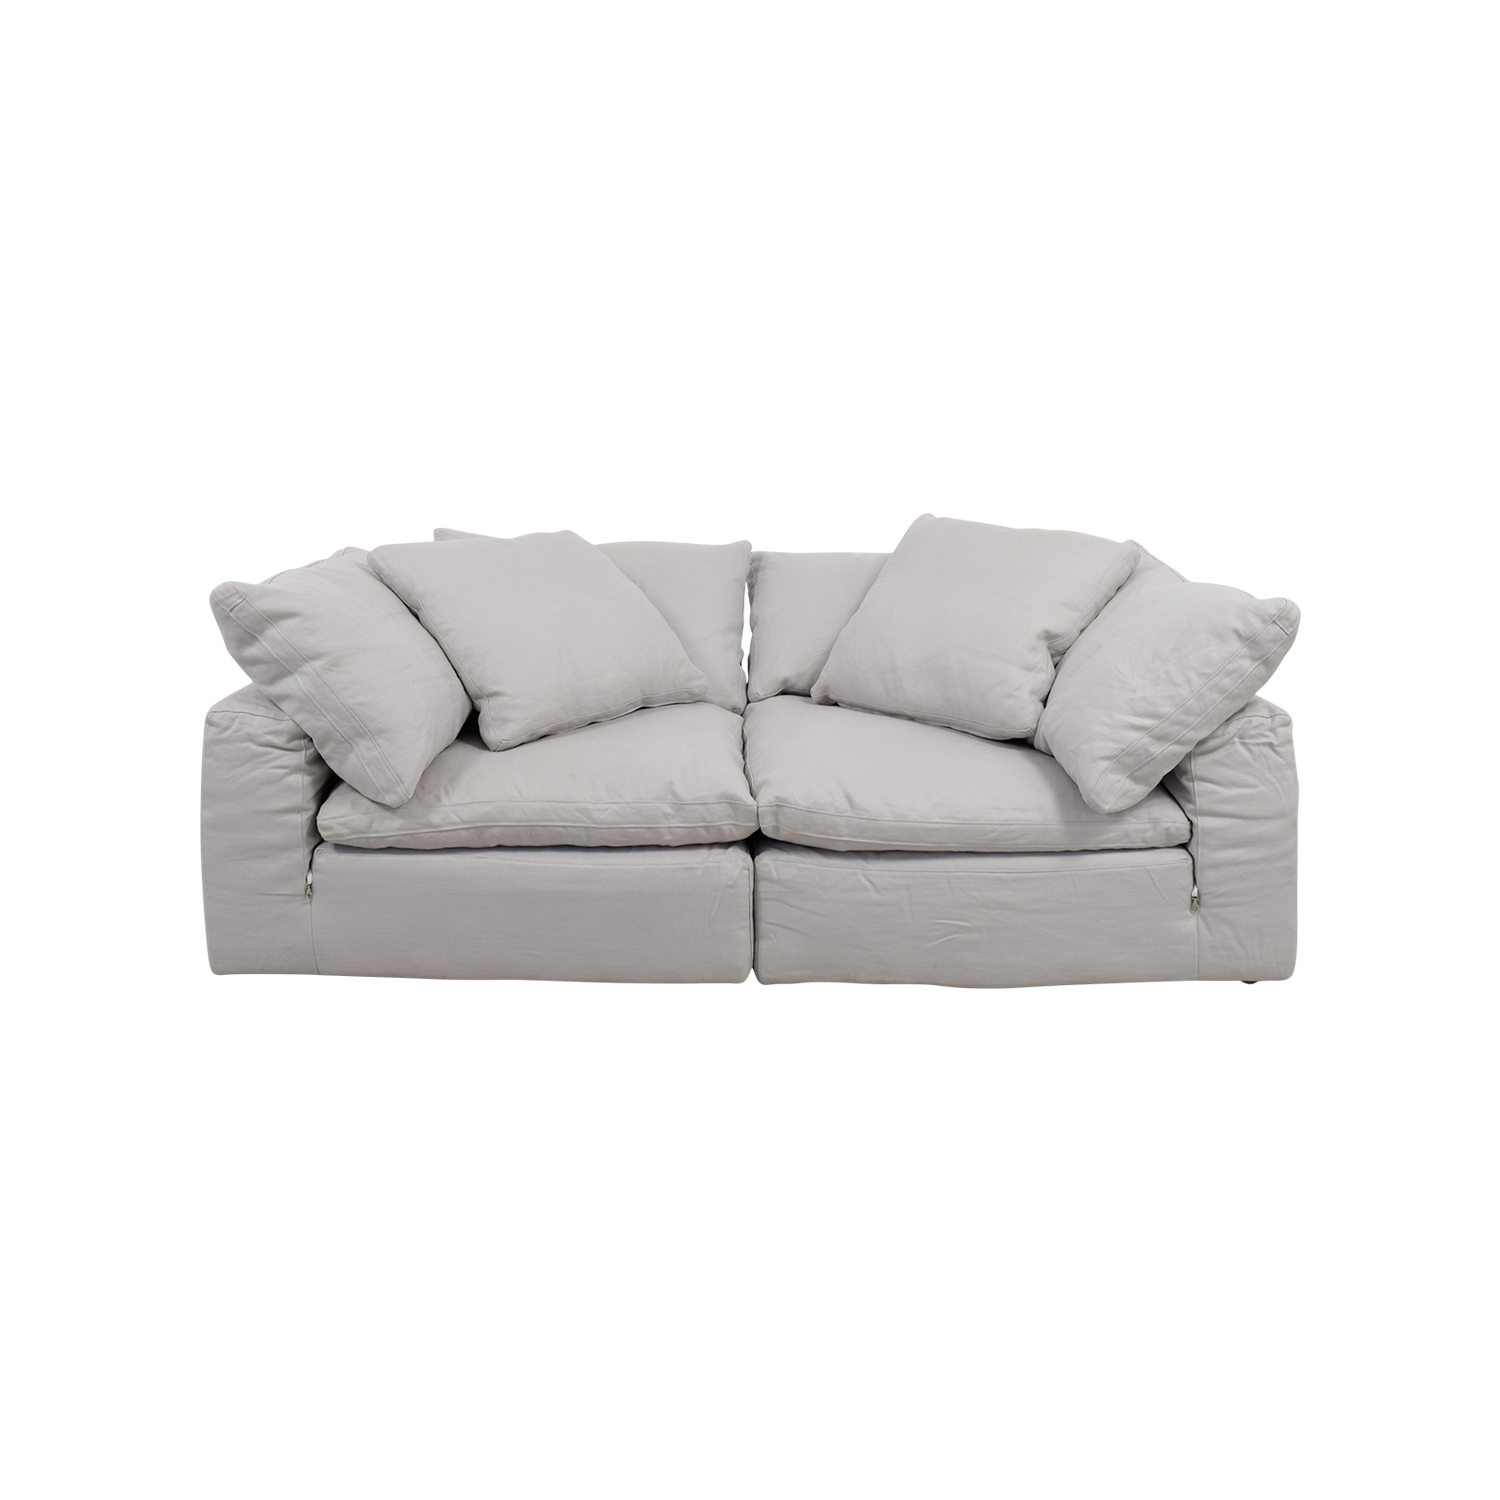 Restoration Hardware The Cloud White Sofa Restoration Hardware